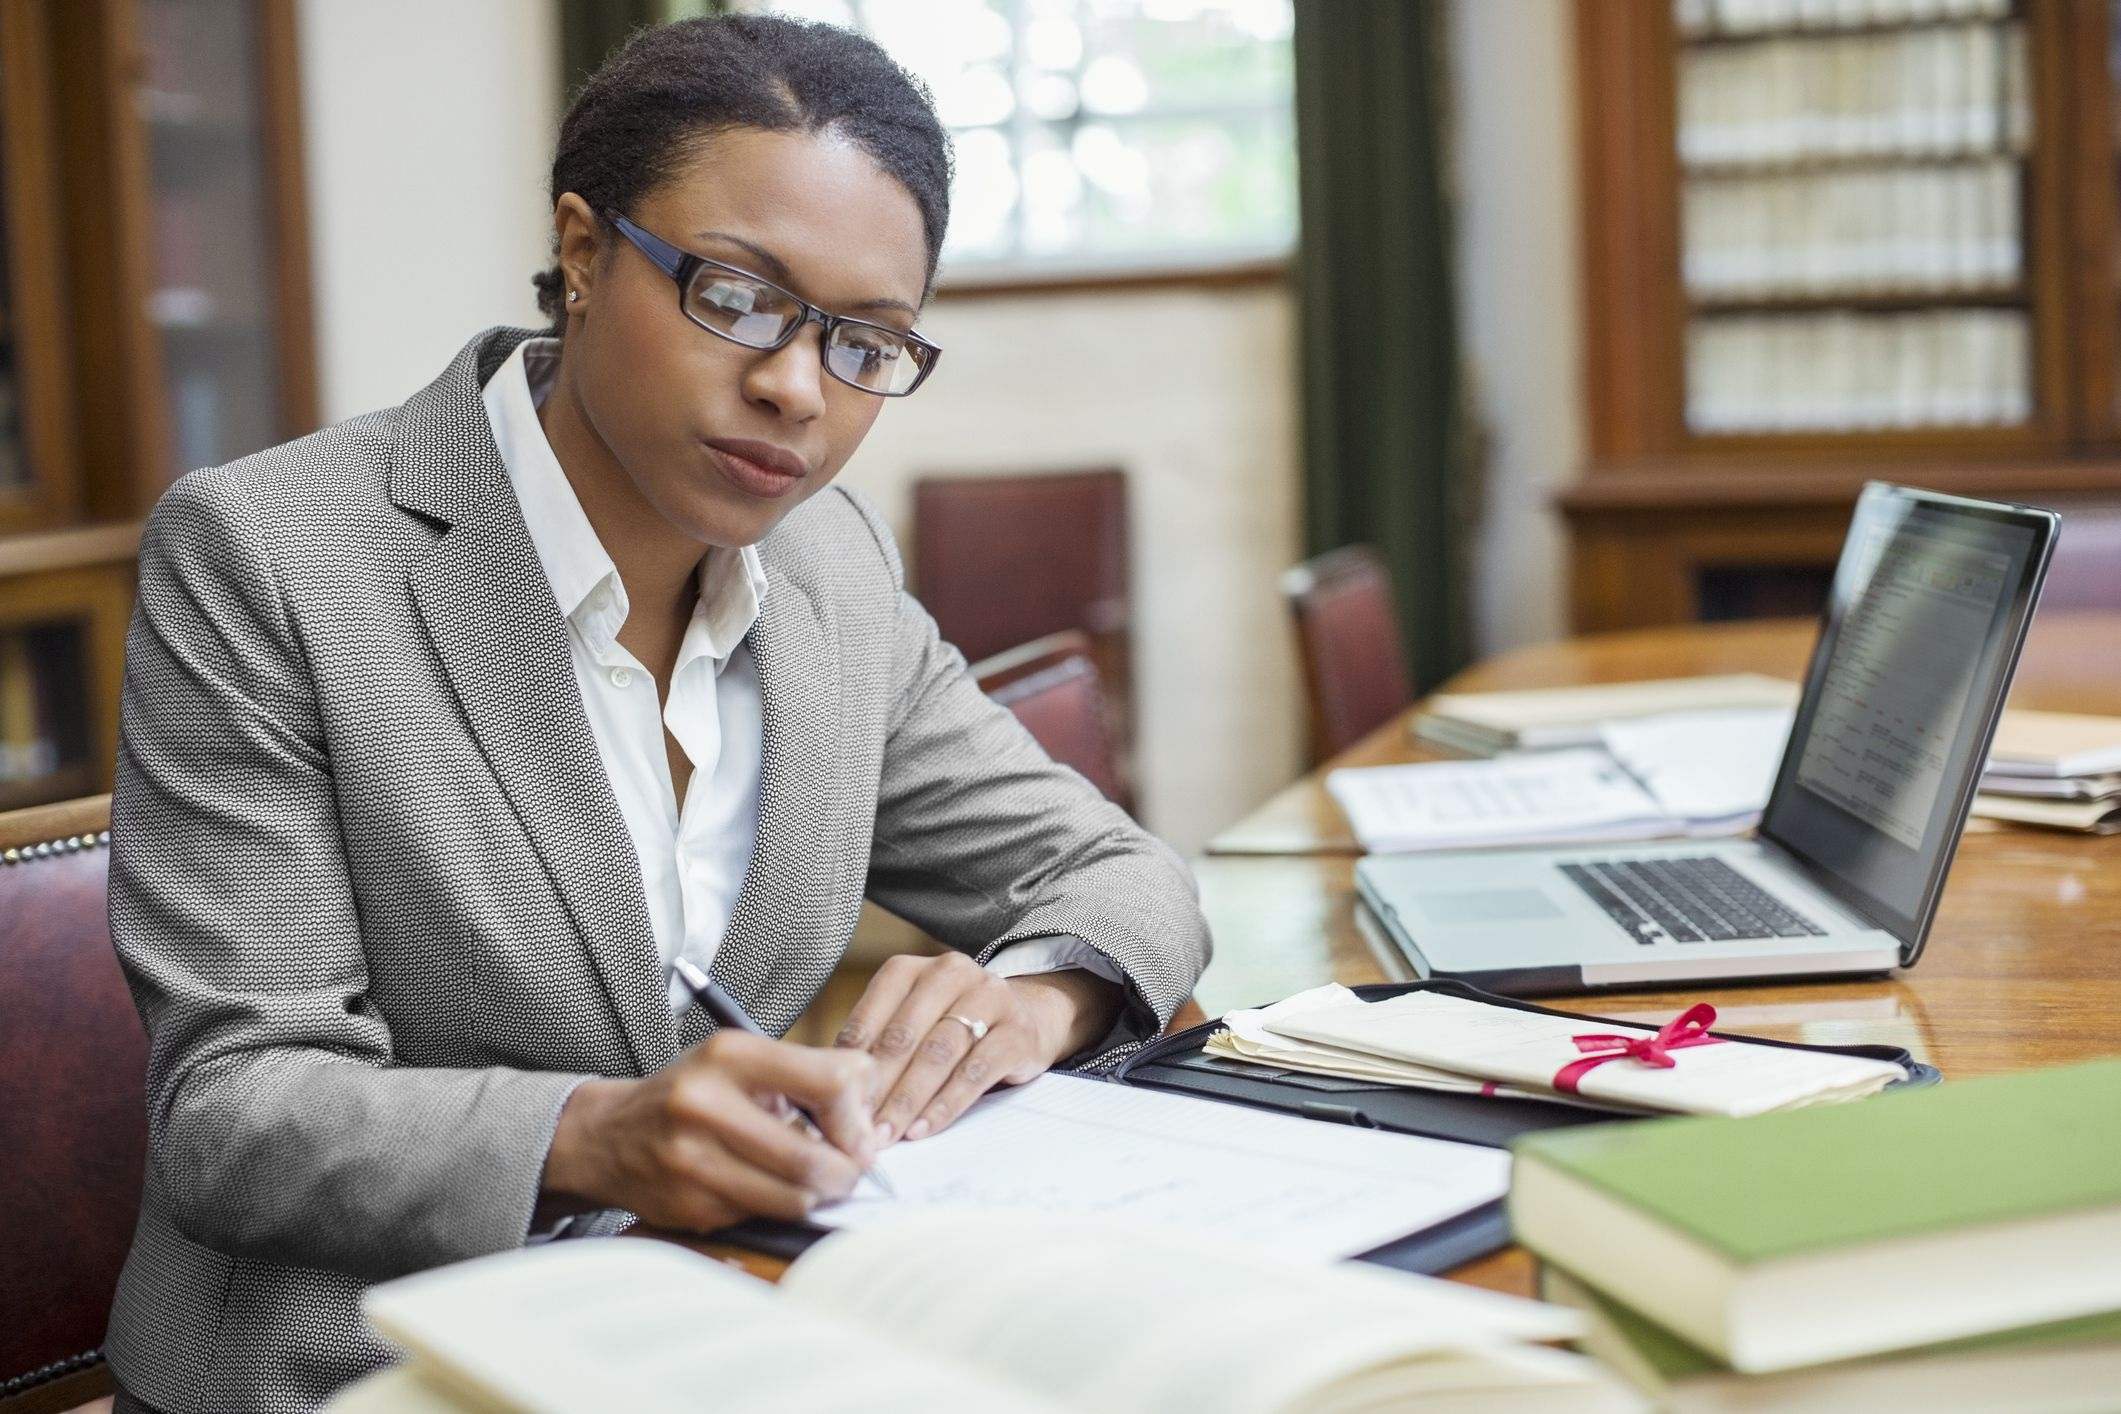 How much time should the Employment Attorney spend on your case?